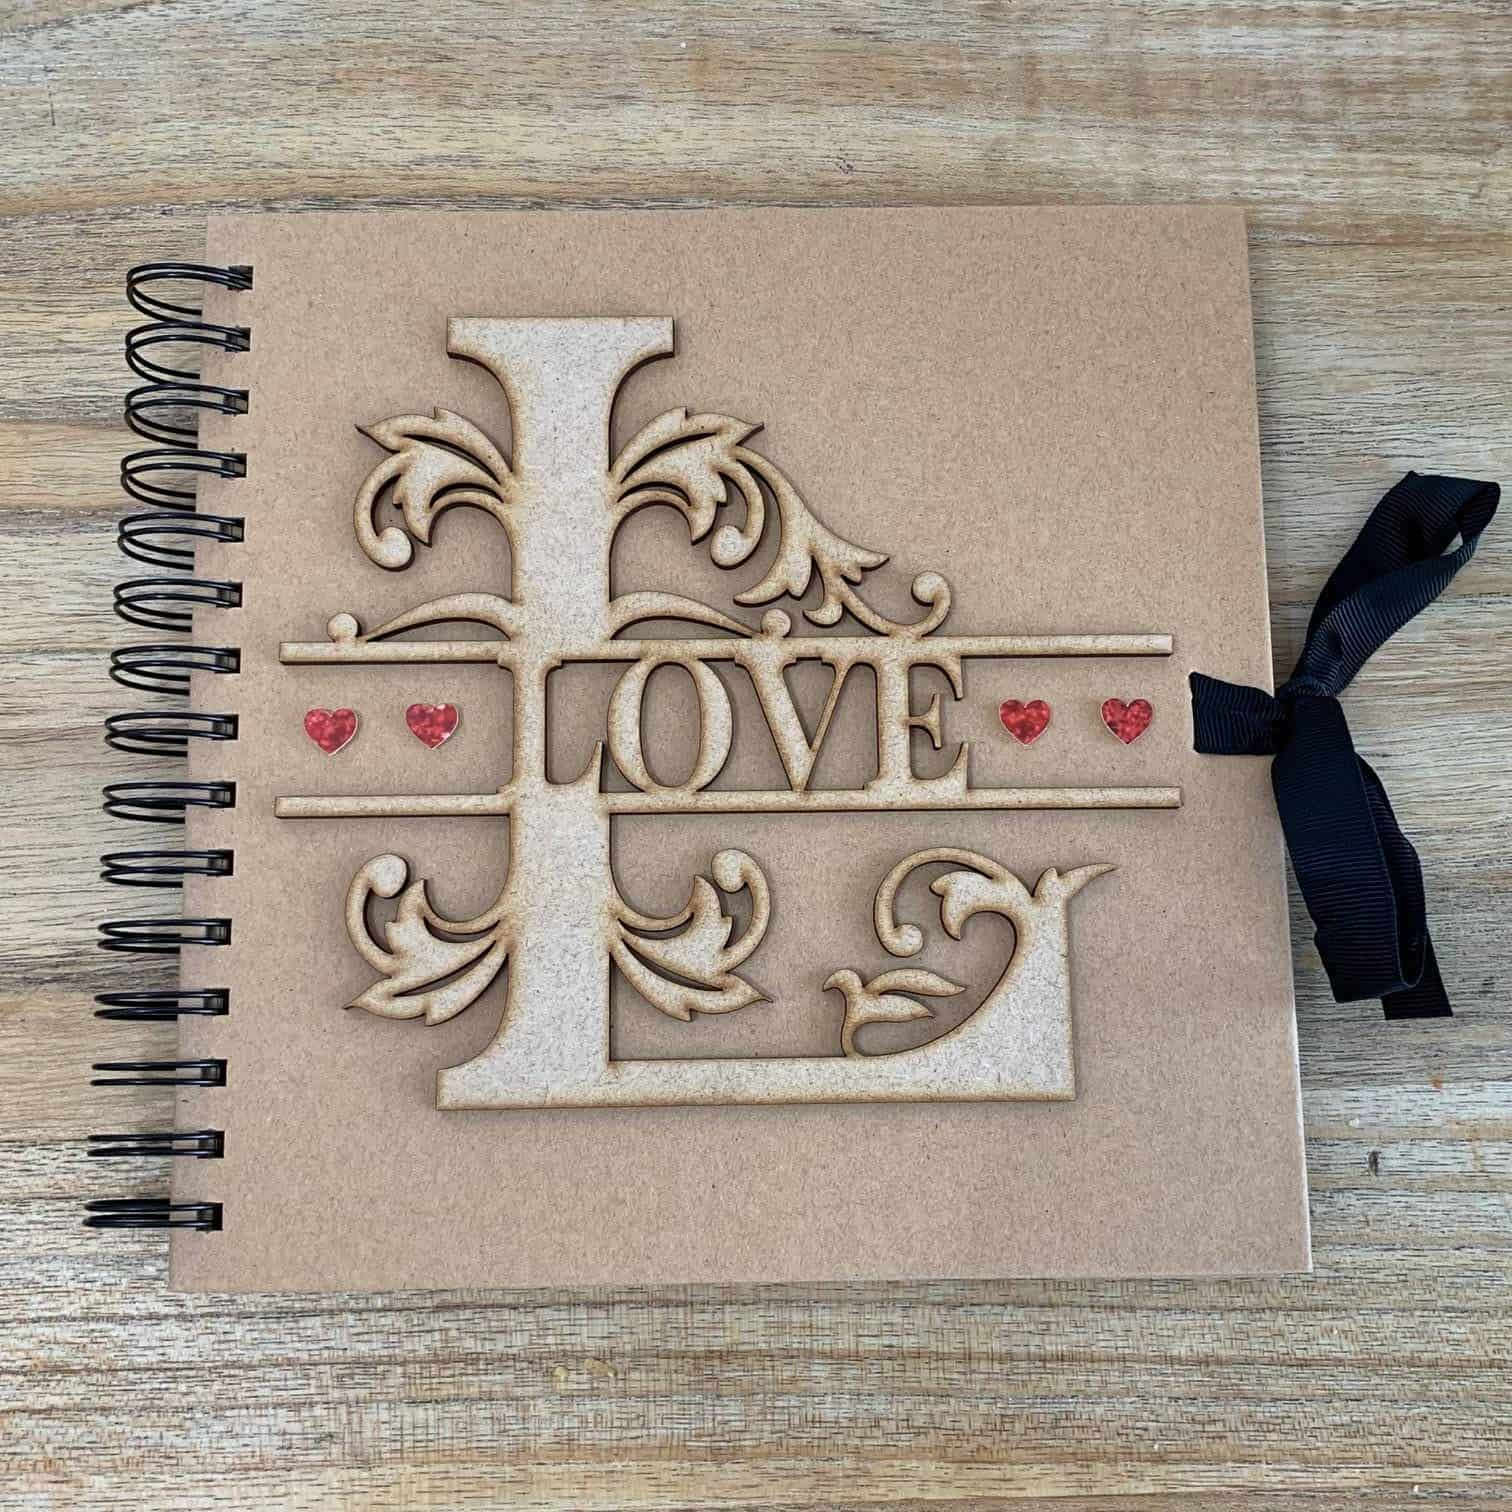 Valentines gift ideas from Amazon Handmade